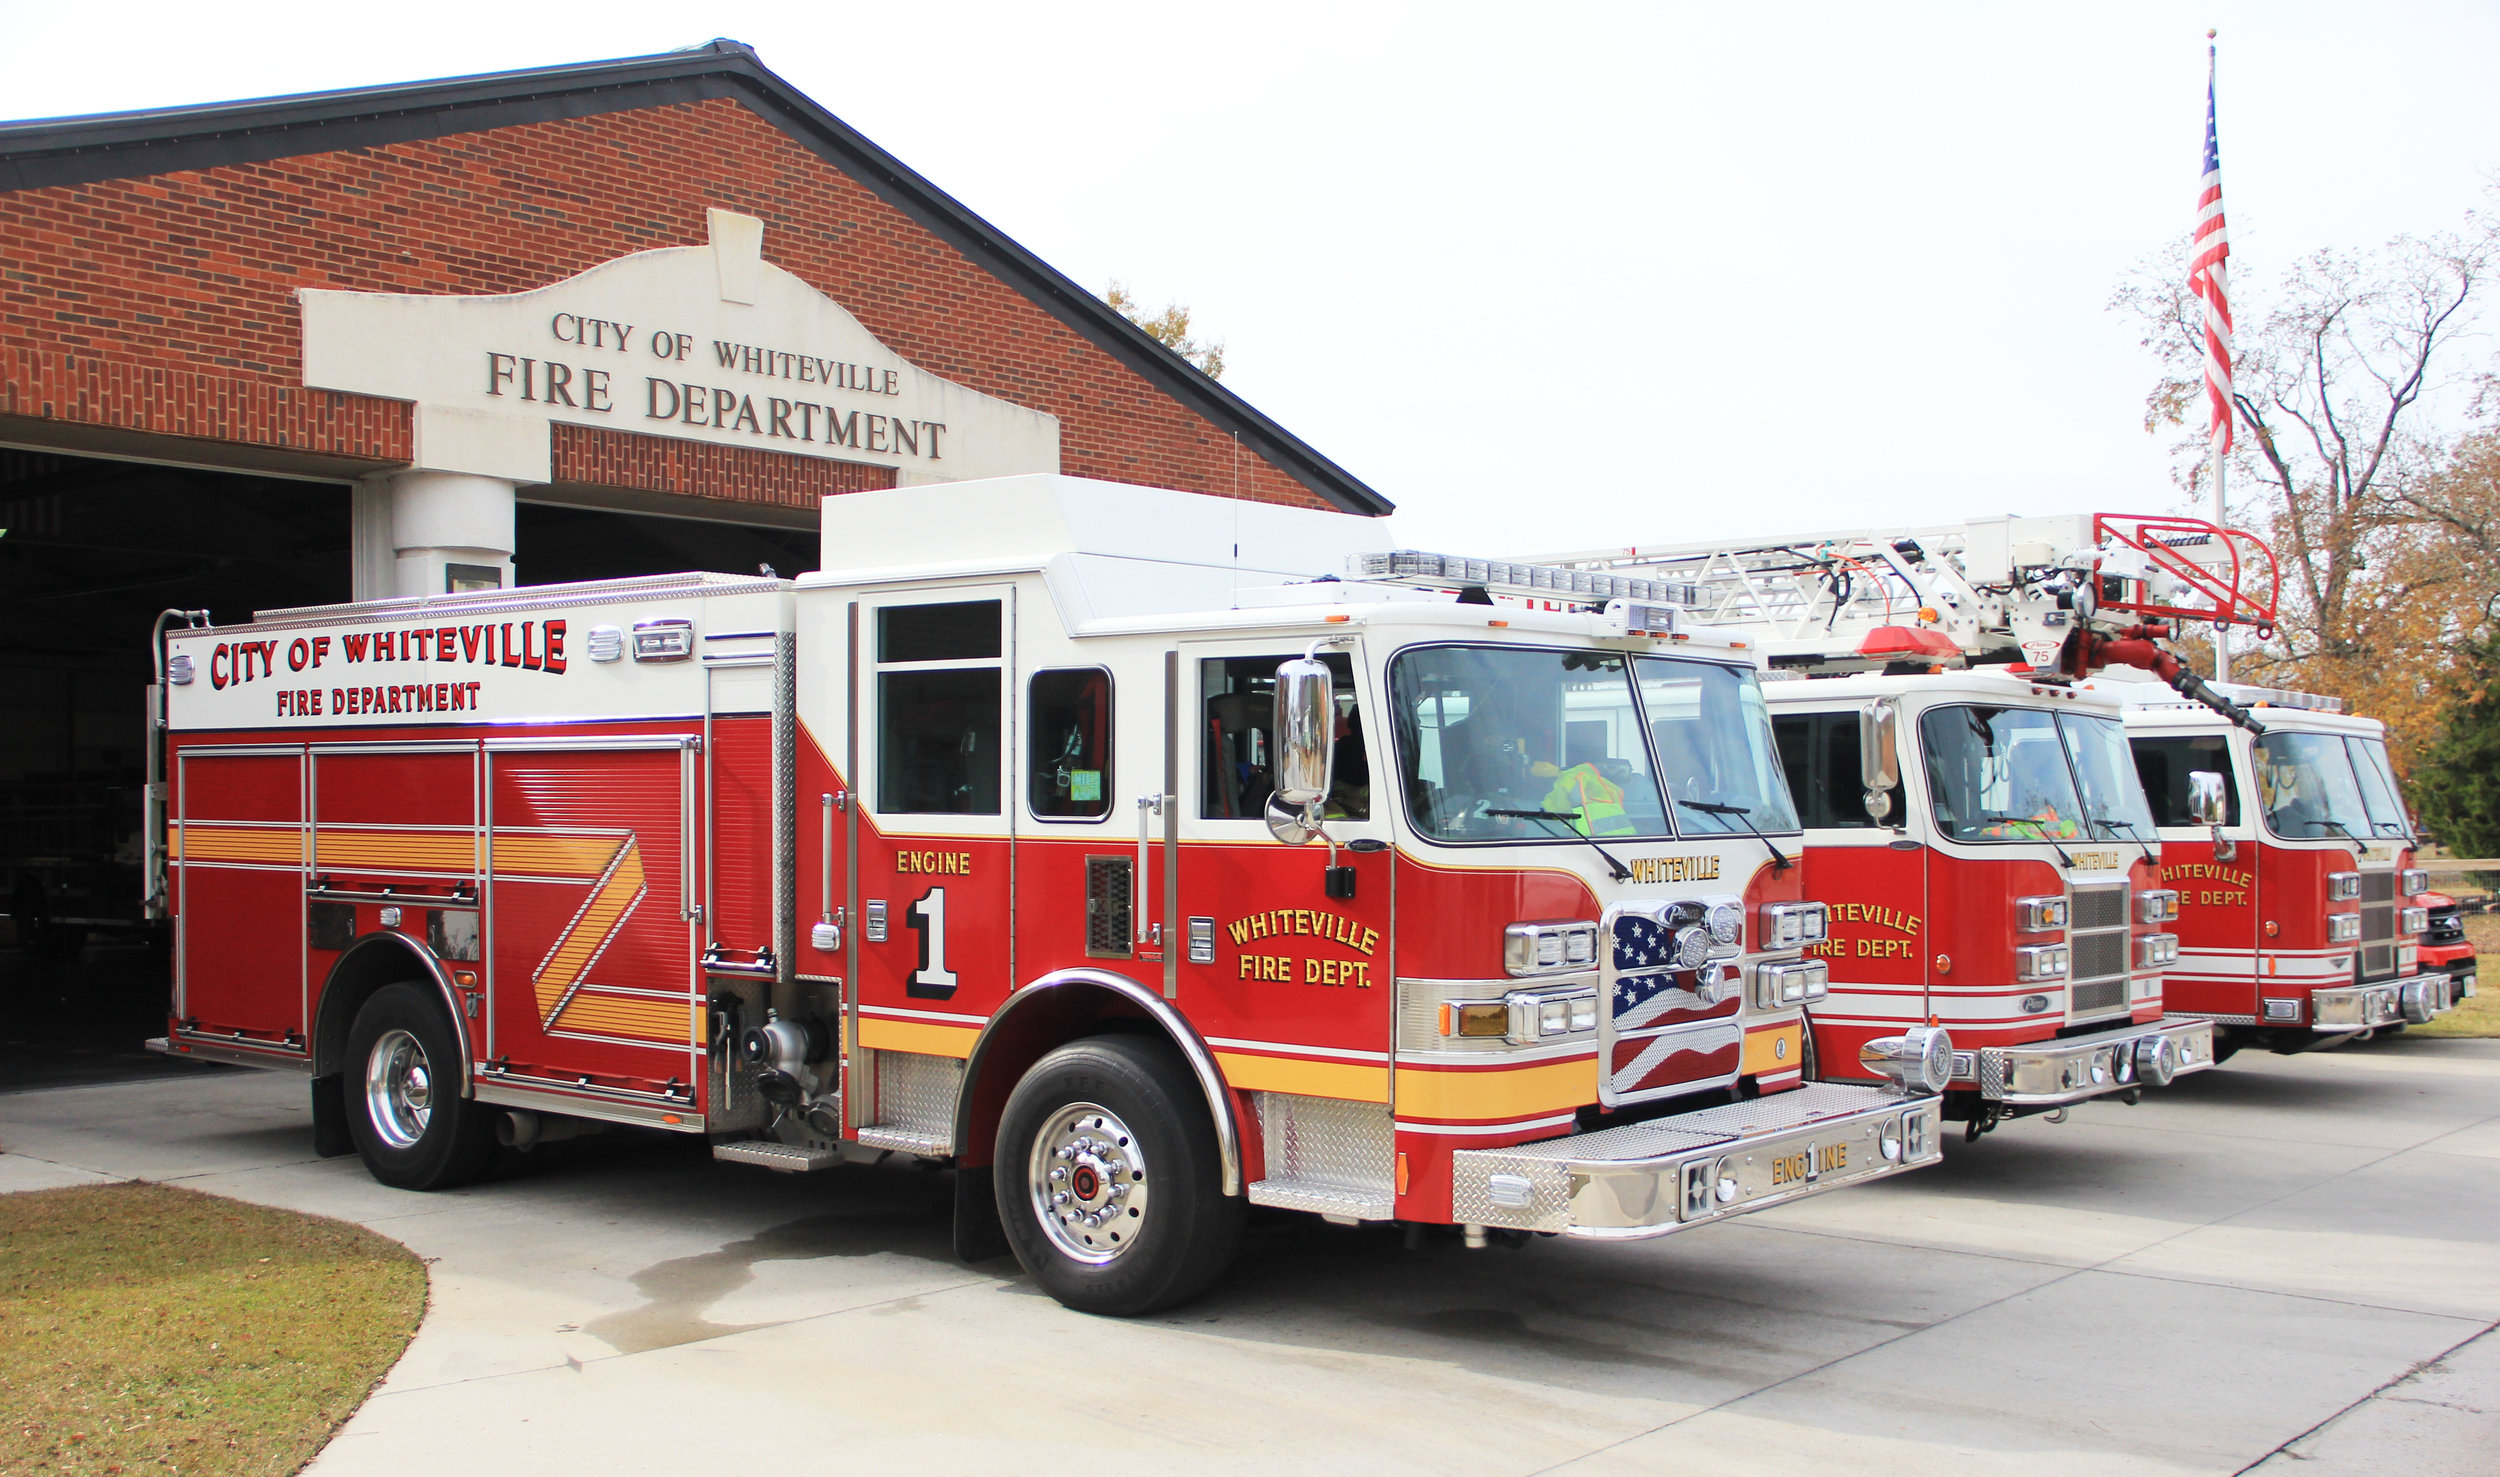 City of Whiteville Fire Department